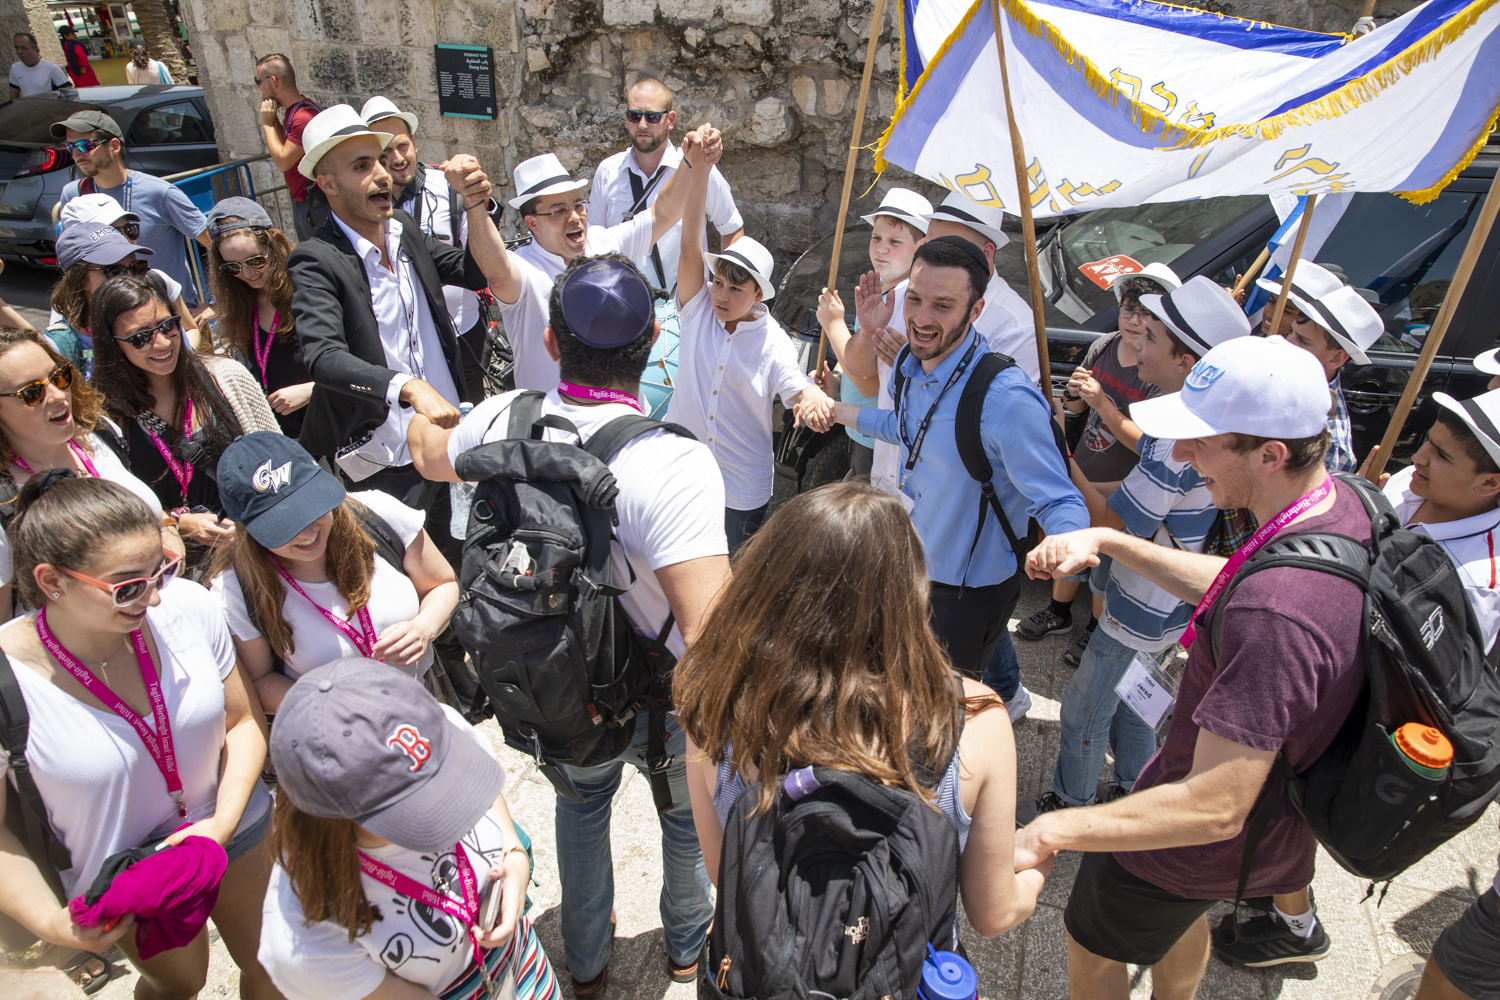 """Numerous Bar Mitzvah celebrations paraded through the area outside the Western Wall. These are common throughout Jerusalem each Thursday when most families host their sons' Bar Mitzvahs in """"The Holy City""""."""